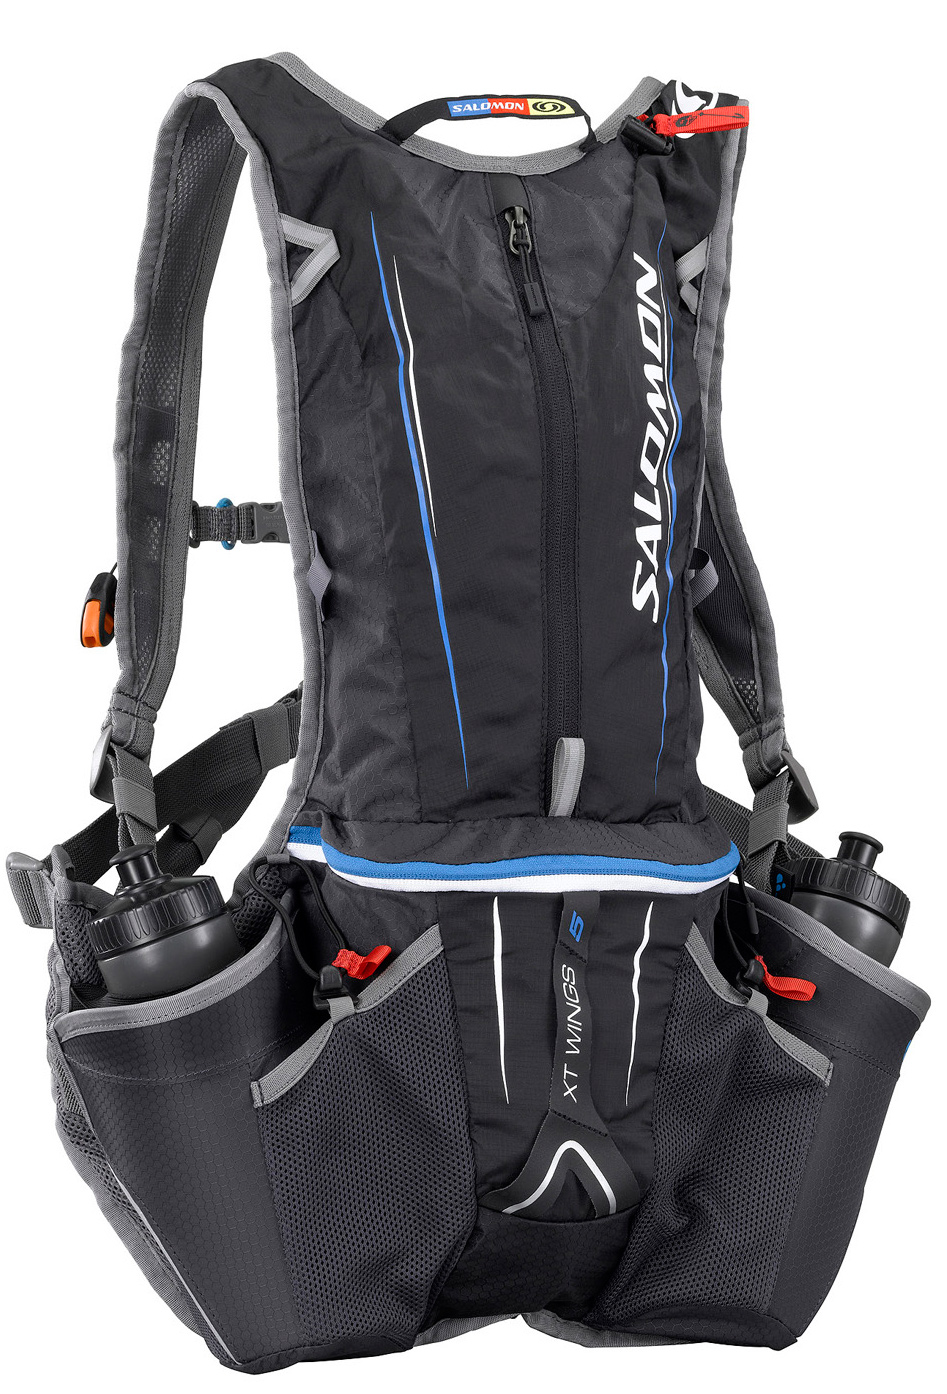 Fitness Upgraded with extra shoulder pocket for more storage. This very light weight pack built on the Airvent Agility system for stability and comfort. Includes 2 storage compartments and 2 bottle holders. For runners or adventure racers who prefer carrying water in bottles, the 4D system provides convenient, stable access.Key Features of the Salomon XT Wings 5 Bag: LITE shoulder straps Harness construction Waterproof zipper Quick fit belt Adjustable sternum strap Mesh side pocket Front pocket 2 main compartments Custom system 4D Pole holder 4D bottle holder Bladder compartment with hanging system 3D bottle included (600 ml/20 oz) Airvent Agility 70D PA*210T Ripstop PU 100D PA honeycomb 53 x 19 x 8 - $76.95